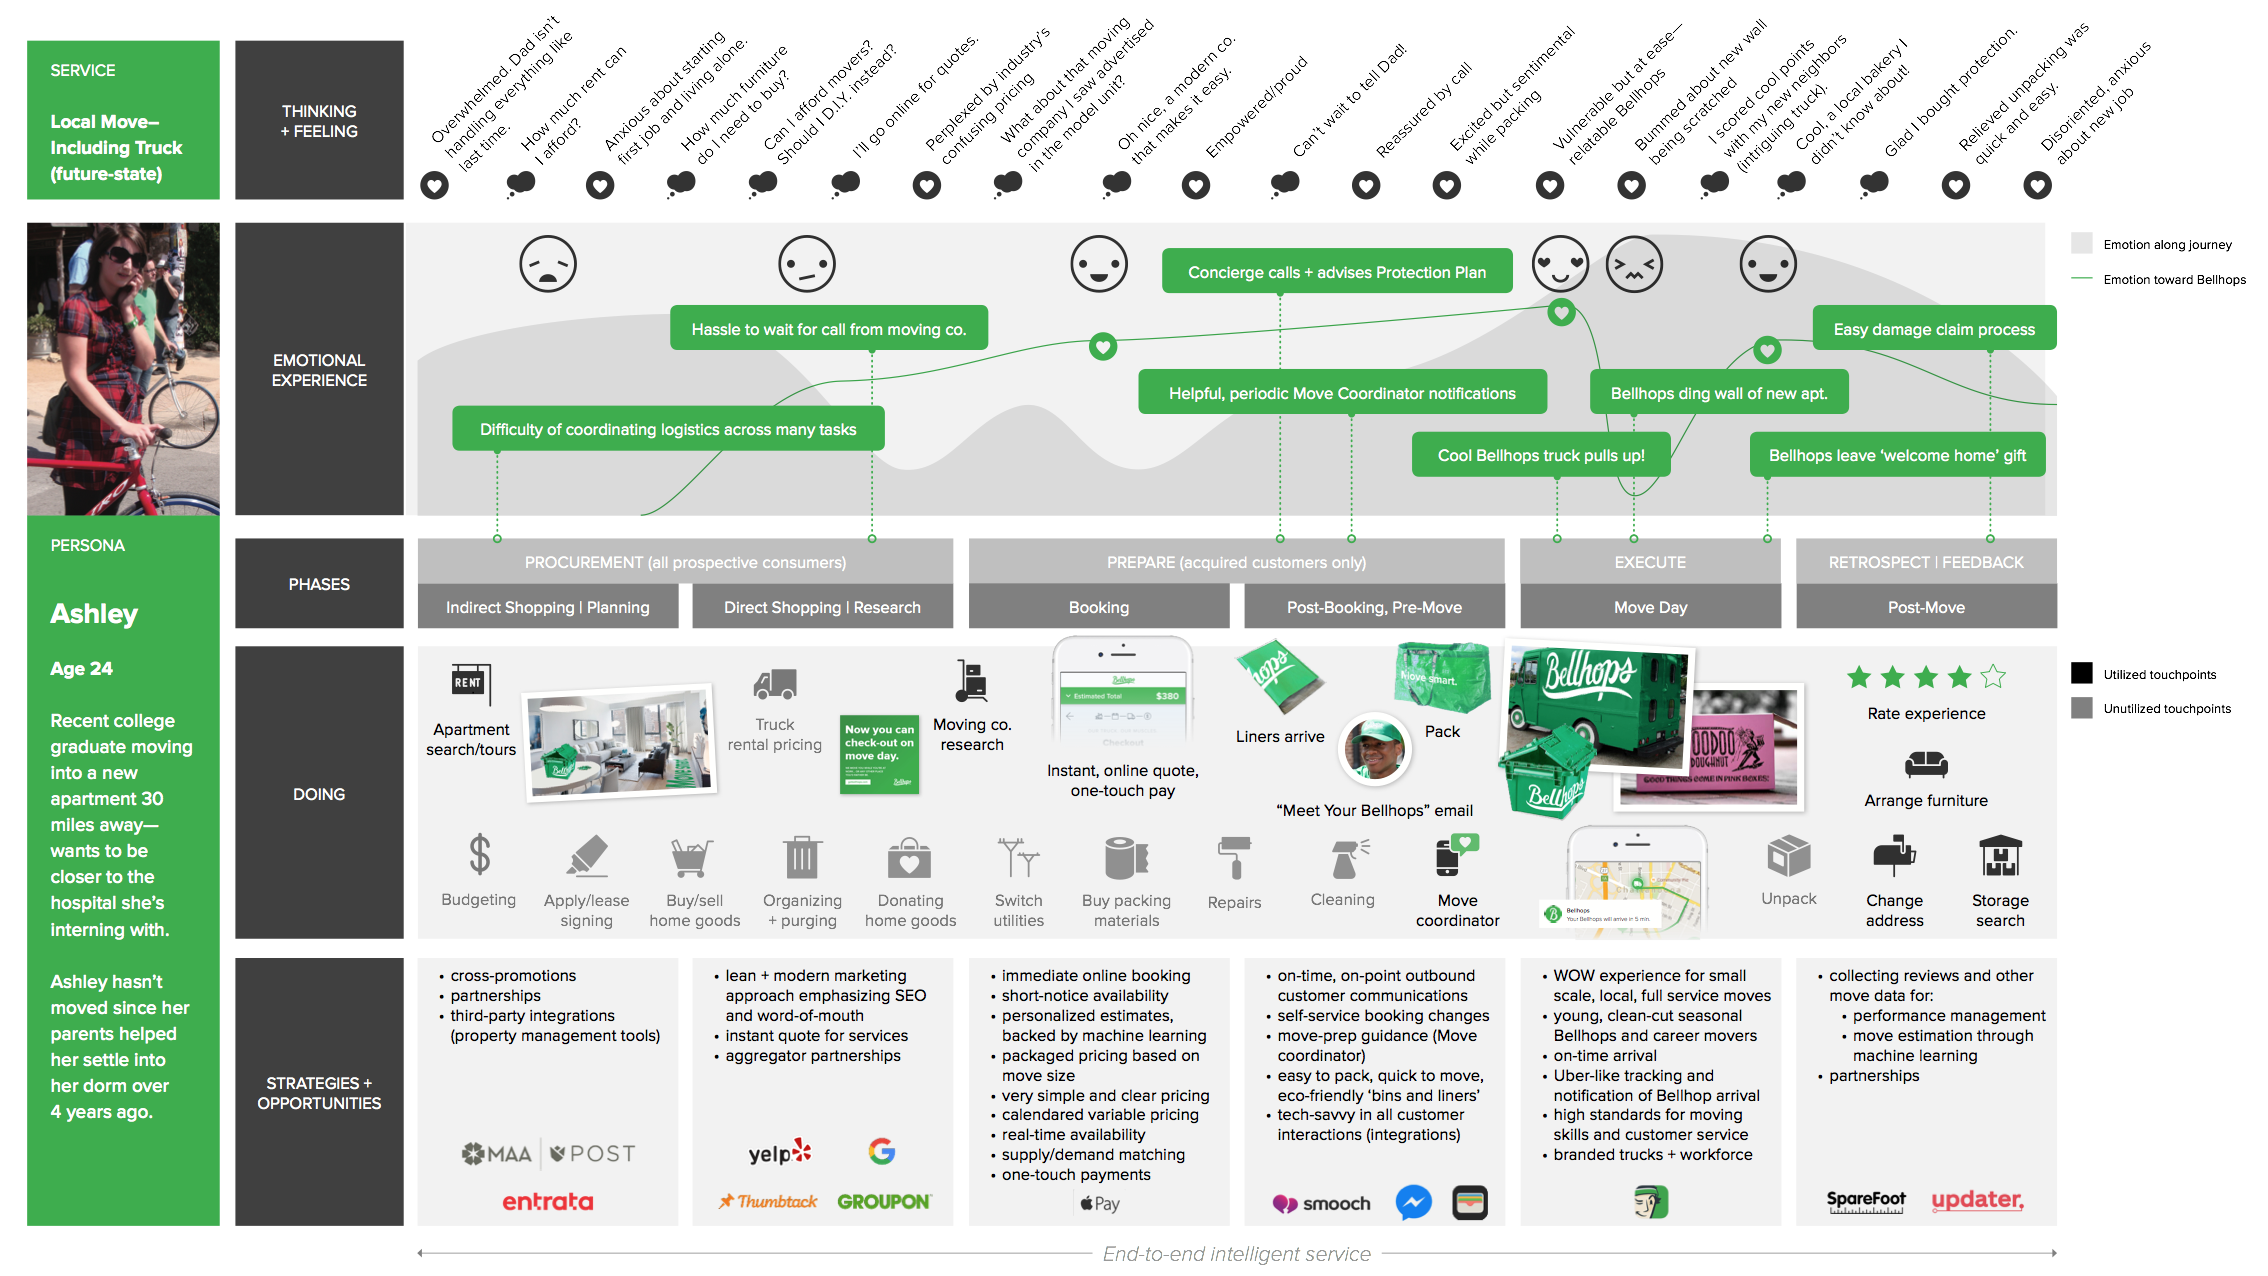 Customer Journey Map For Transport Transport Customer Journey Maps - Customer journey map template